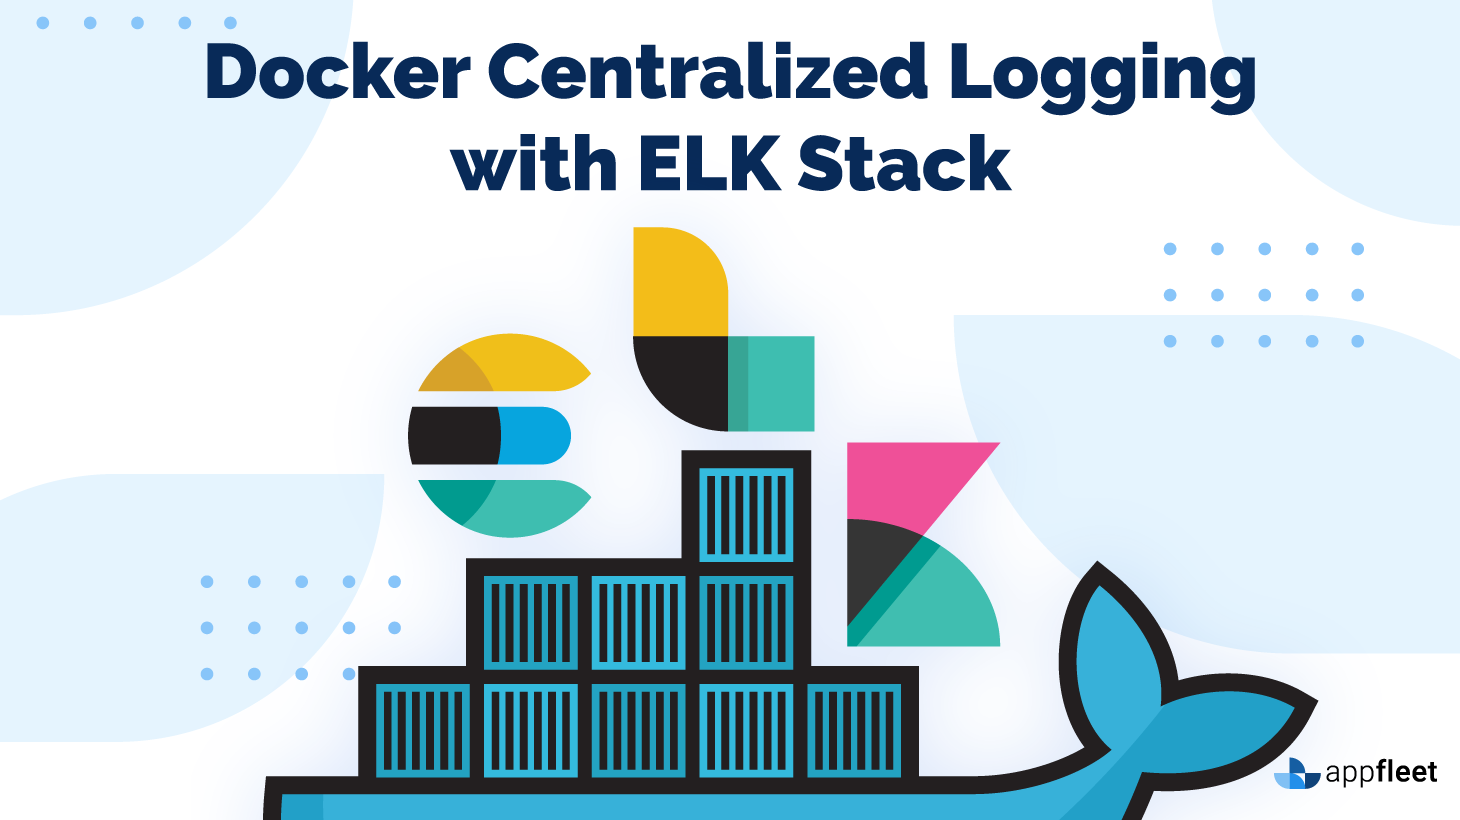 Docker Centralized Logging with ELK Stack